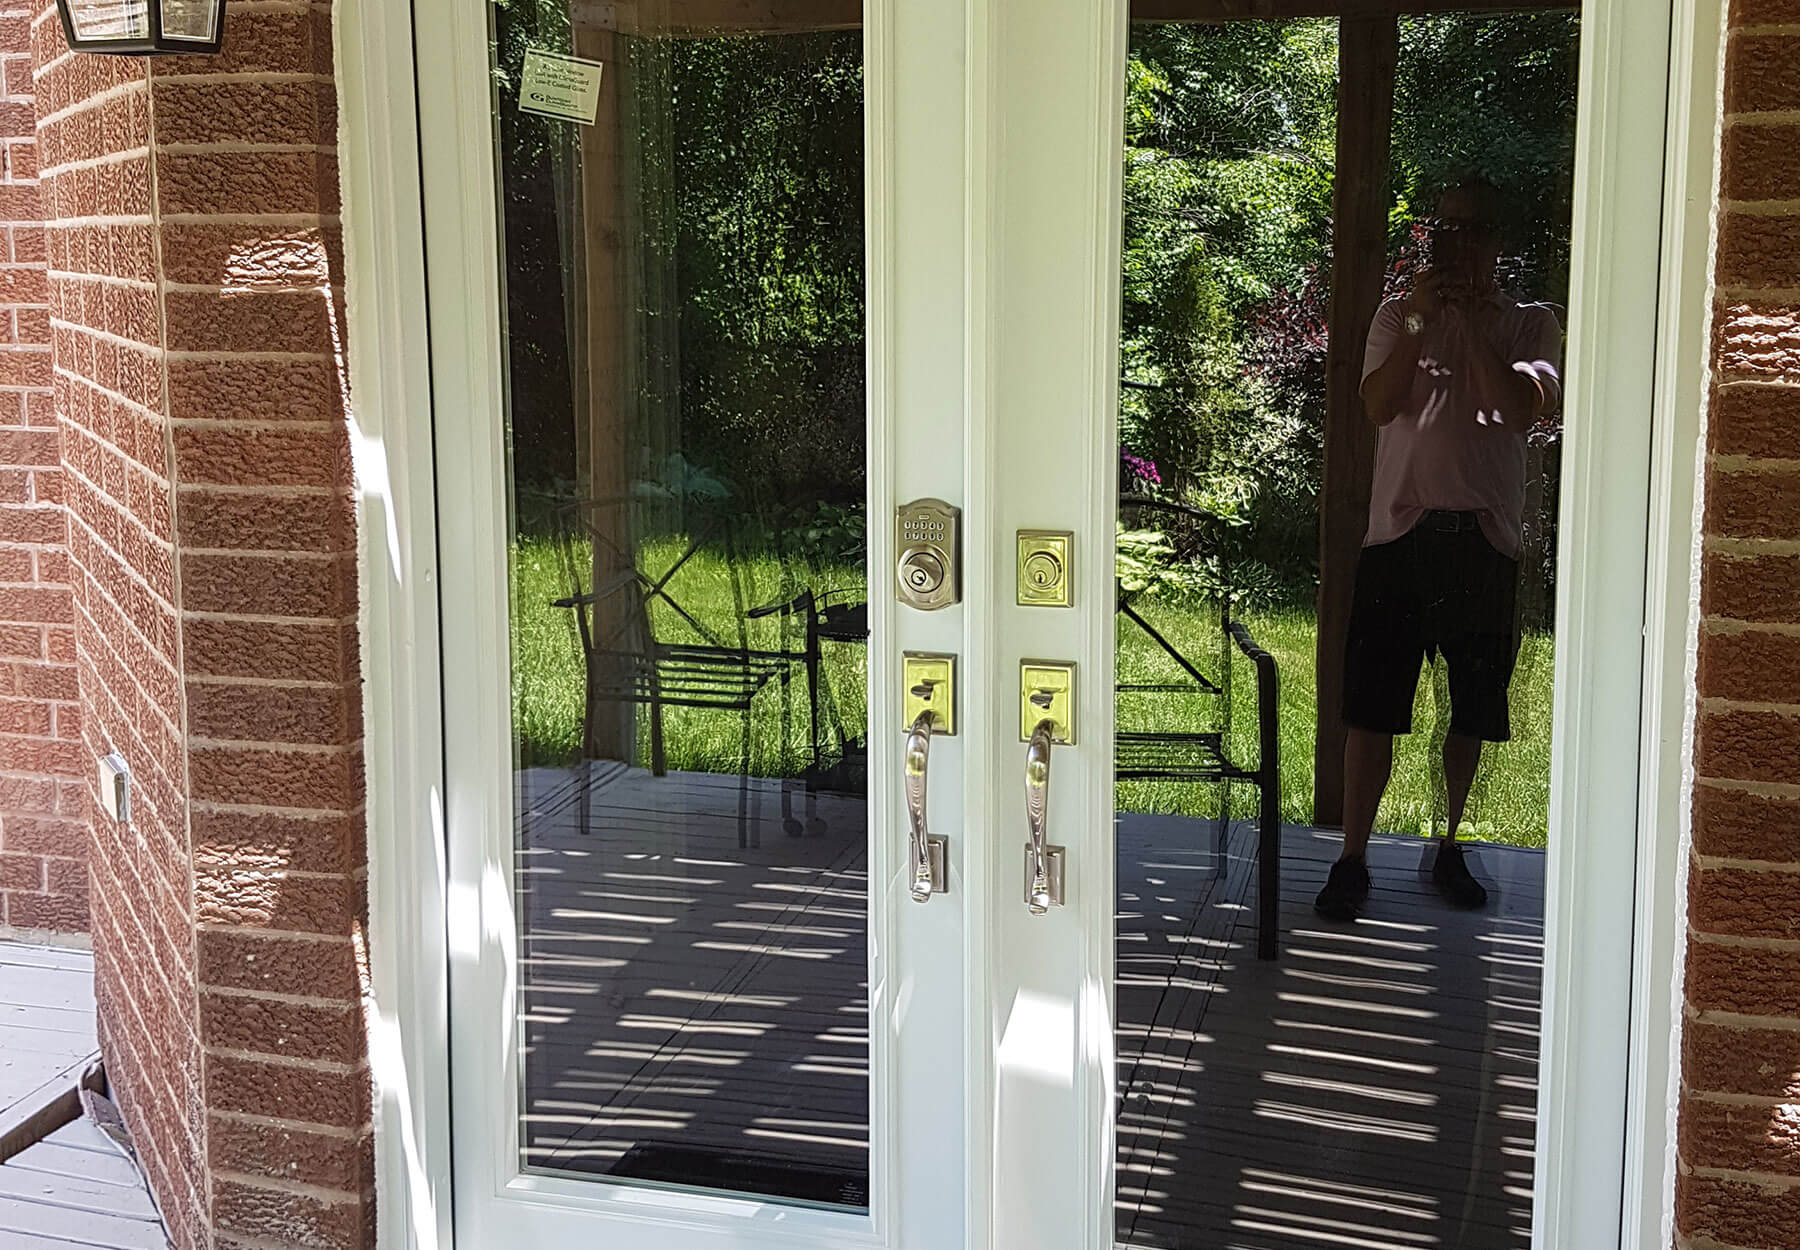 A close-up of french doors